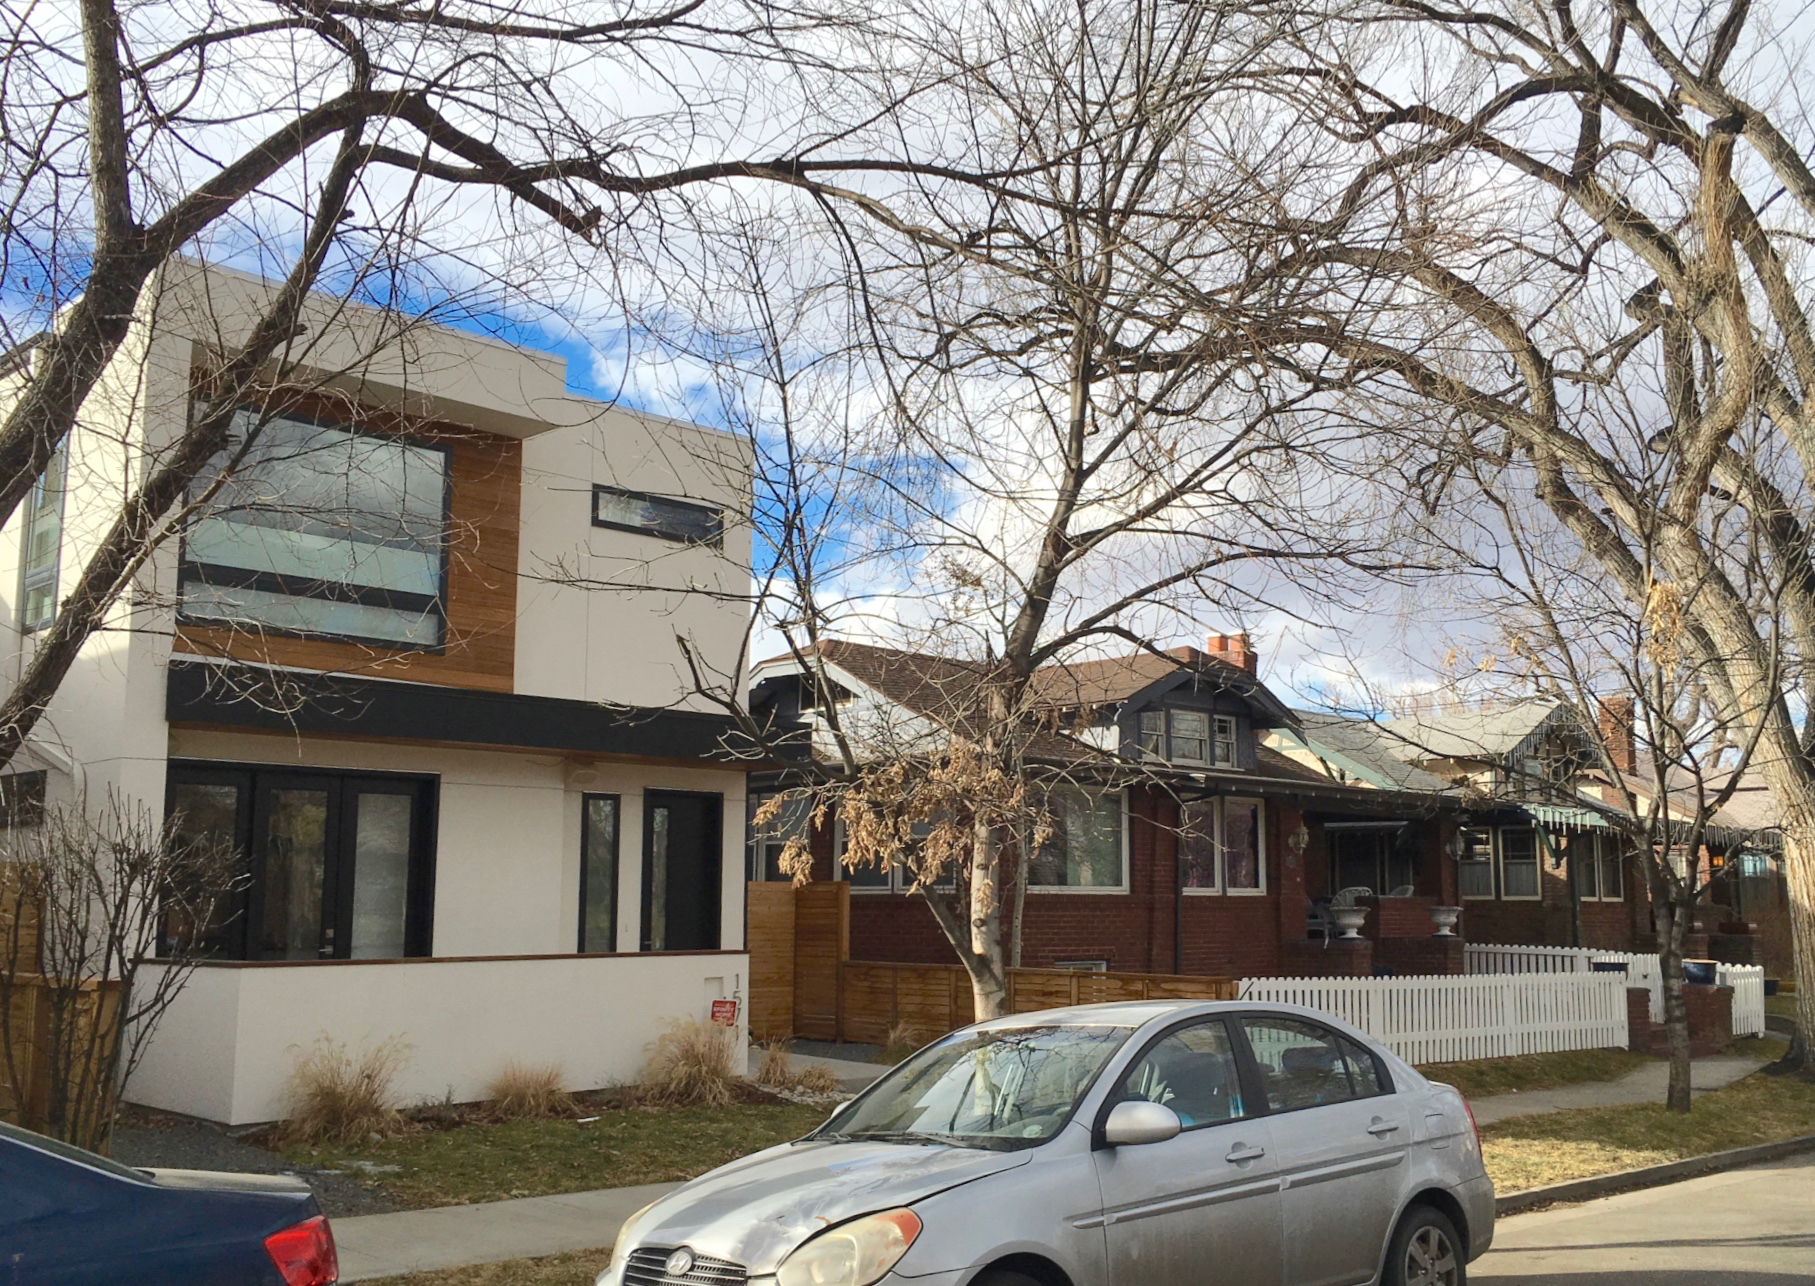 New Modernism infill on streetscape